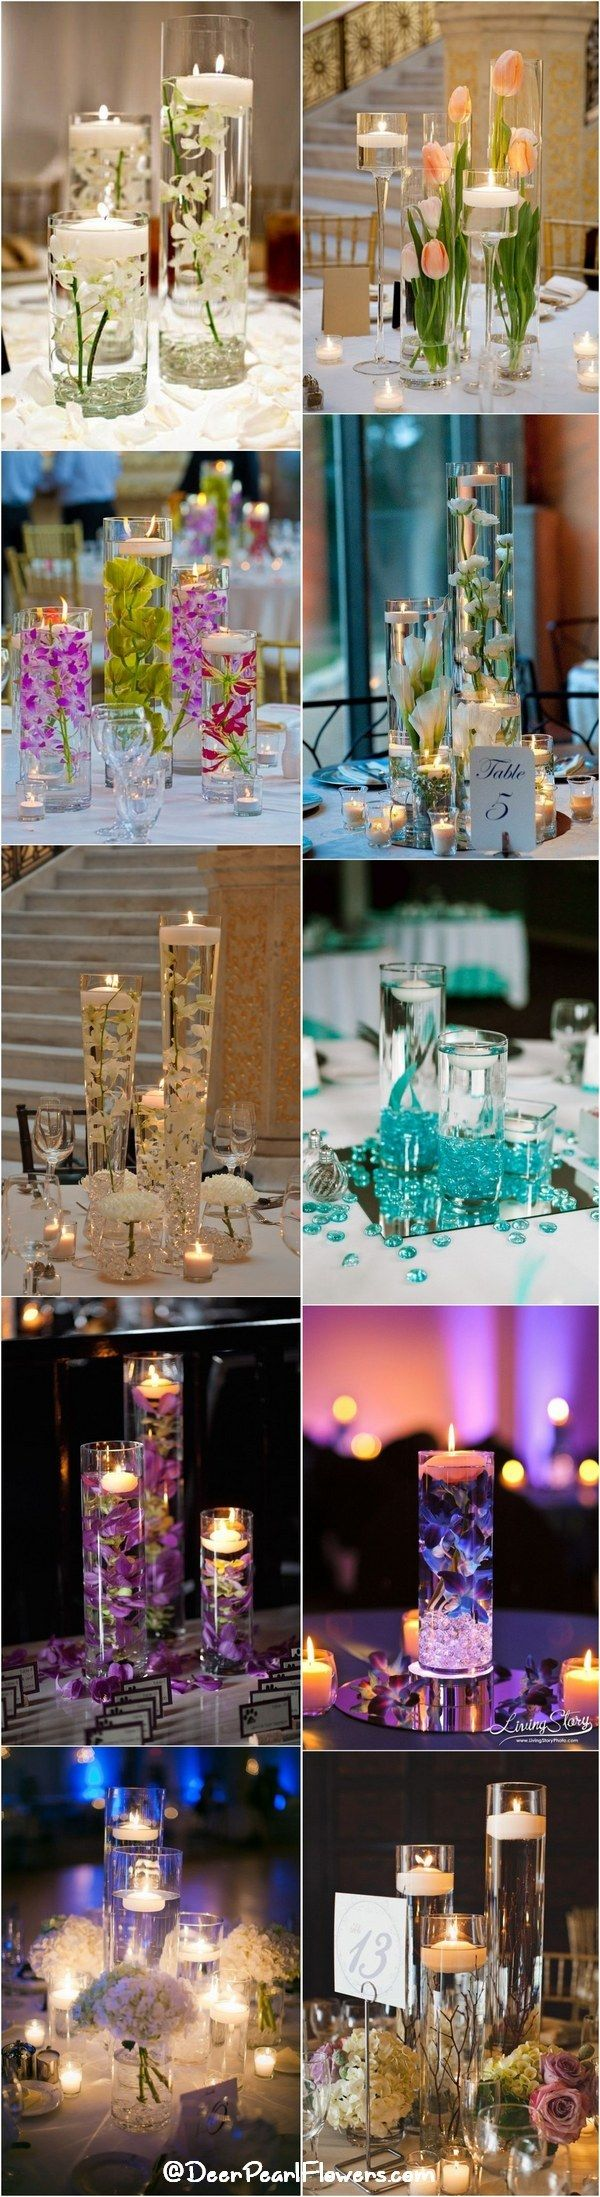 Romantic floating wedding centerpiece ideas / http://www.deerpearlflowers.com/floating-wedding-centerpieces/